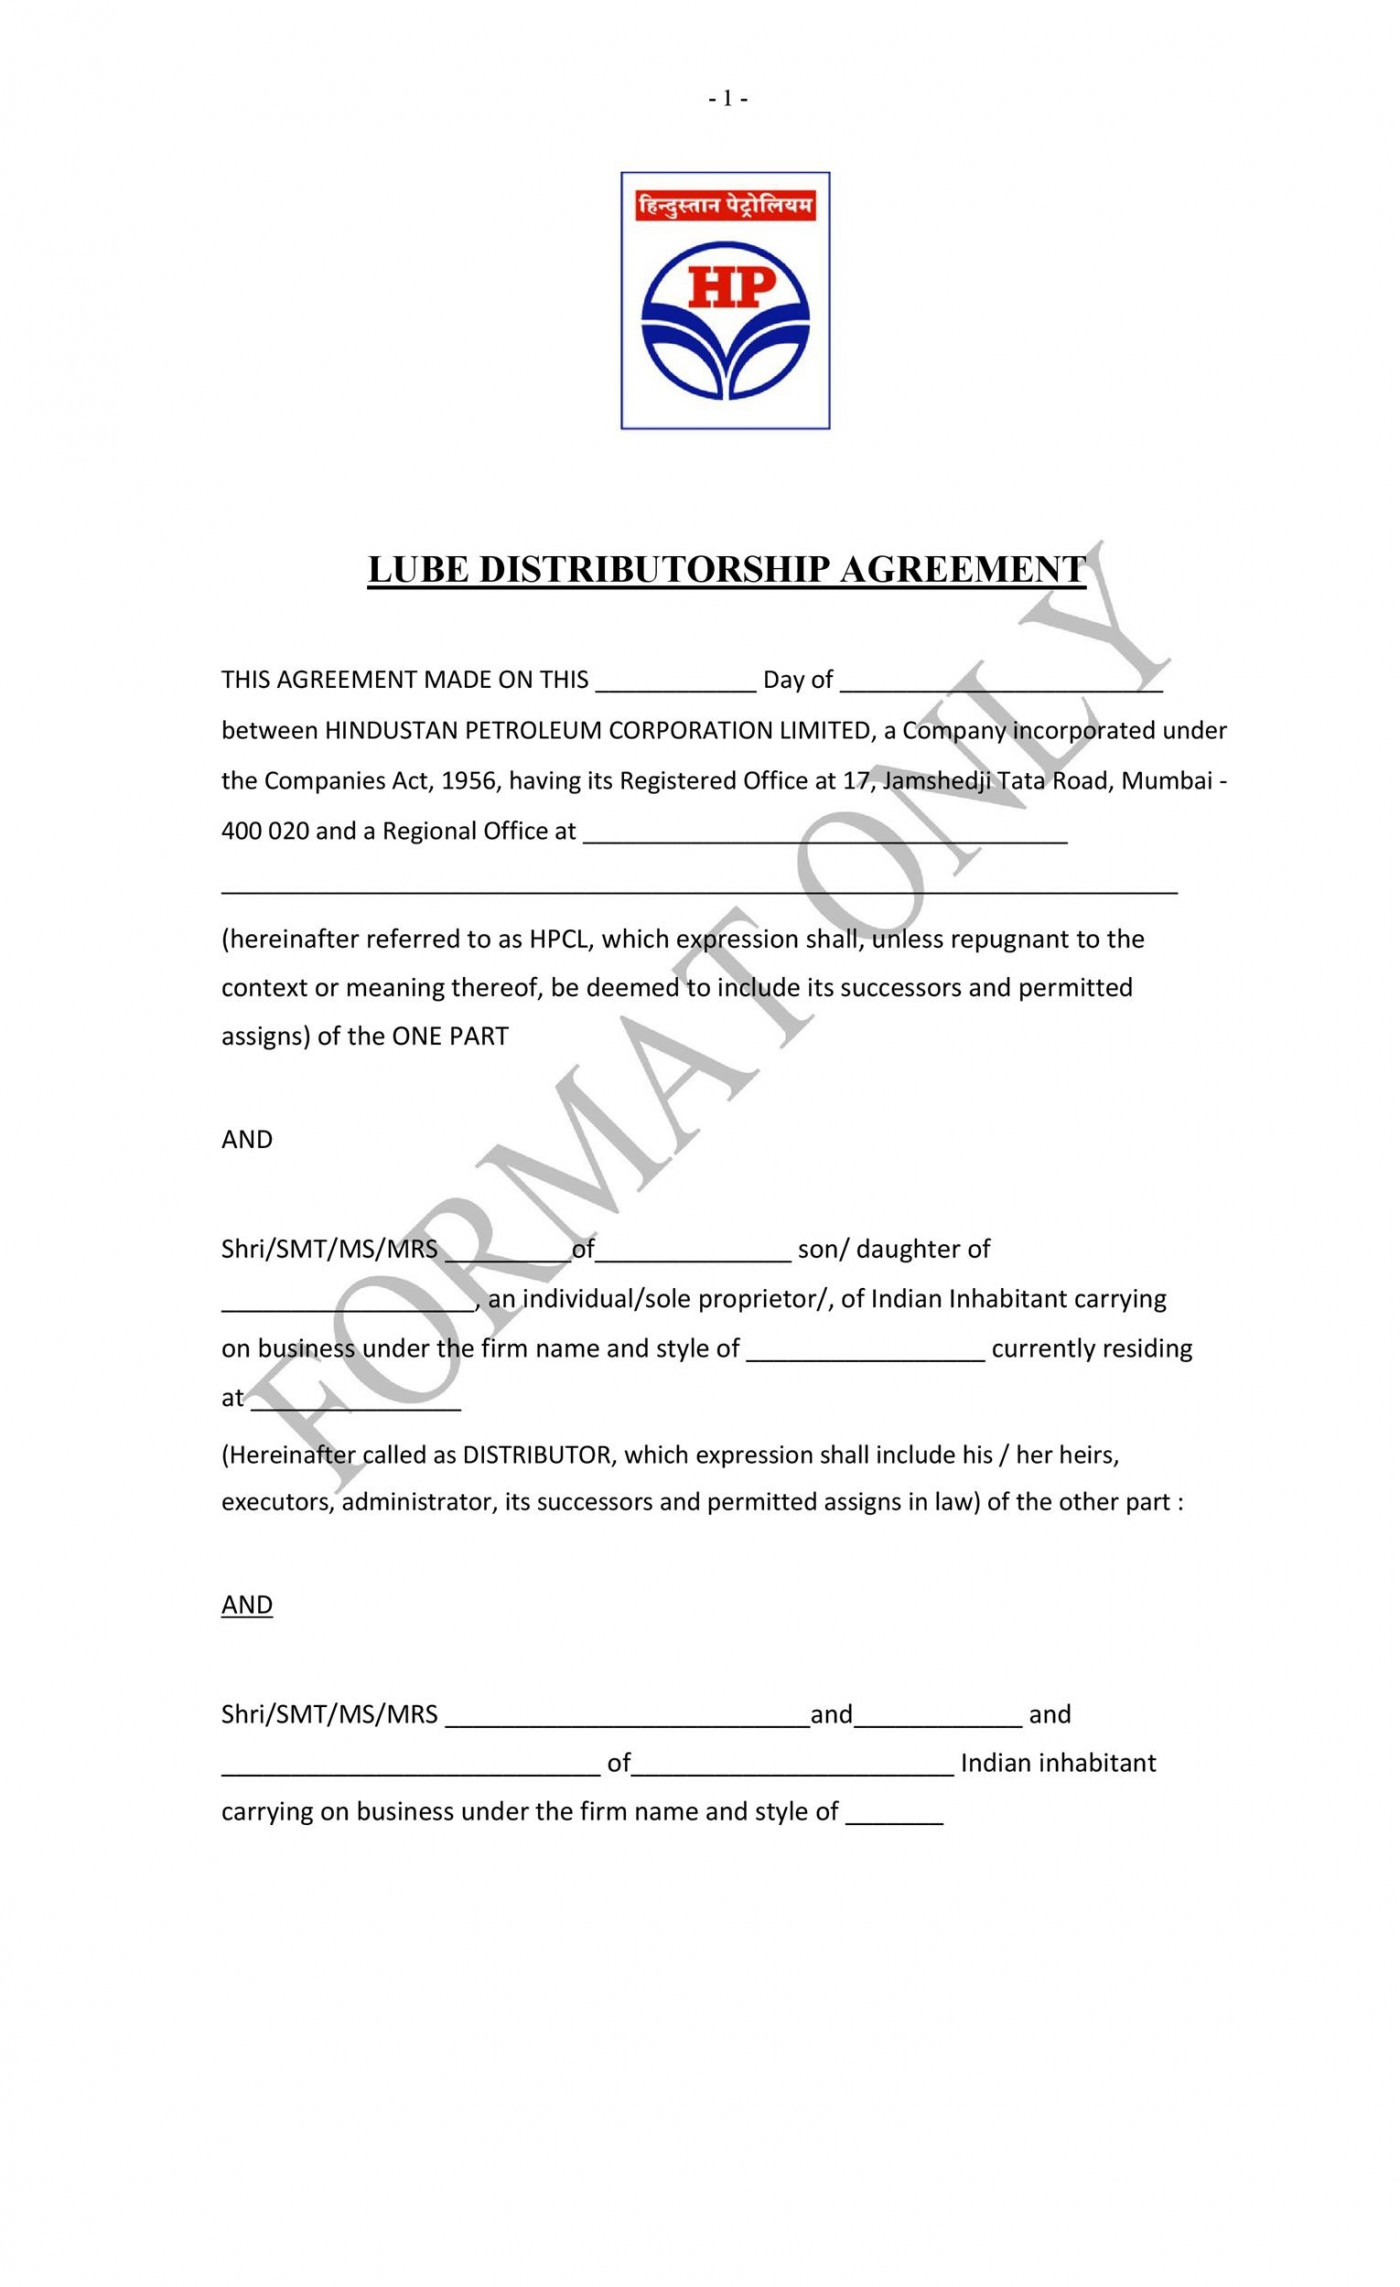 007 Incredible Exclusive Distribution Contract Template High Resolution  Sole Distributor Agreement Non Free1400